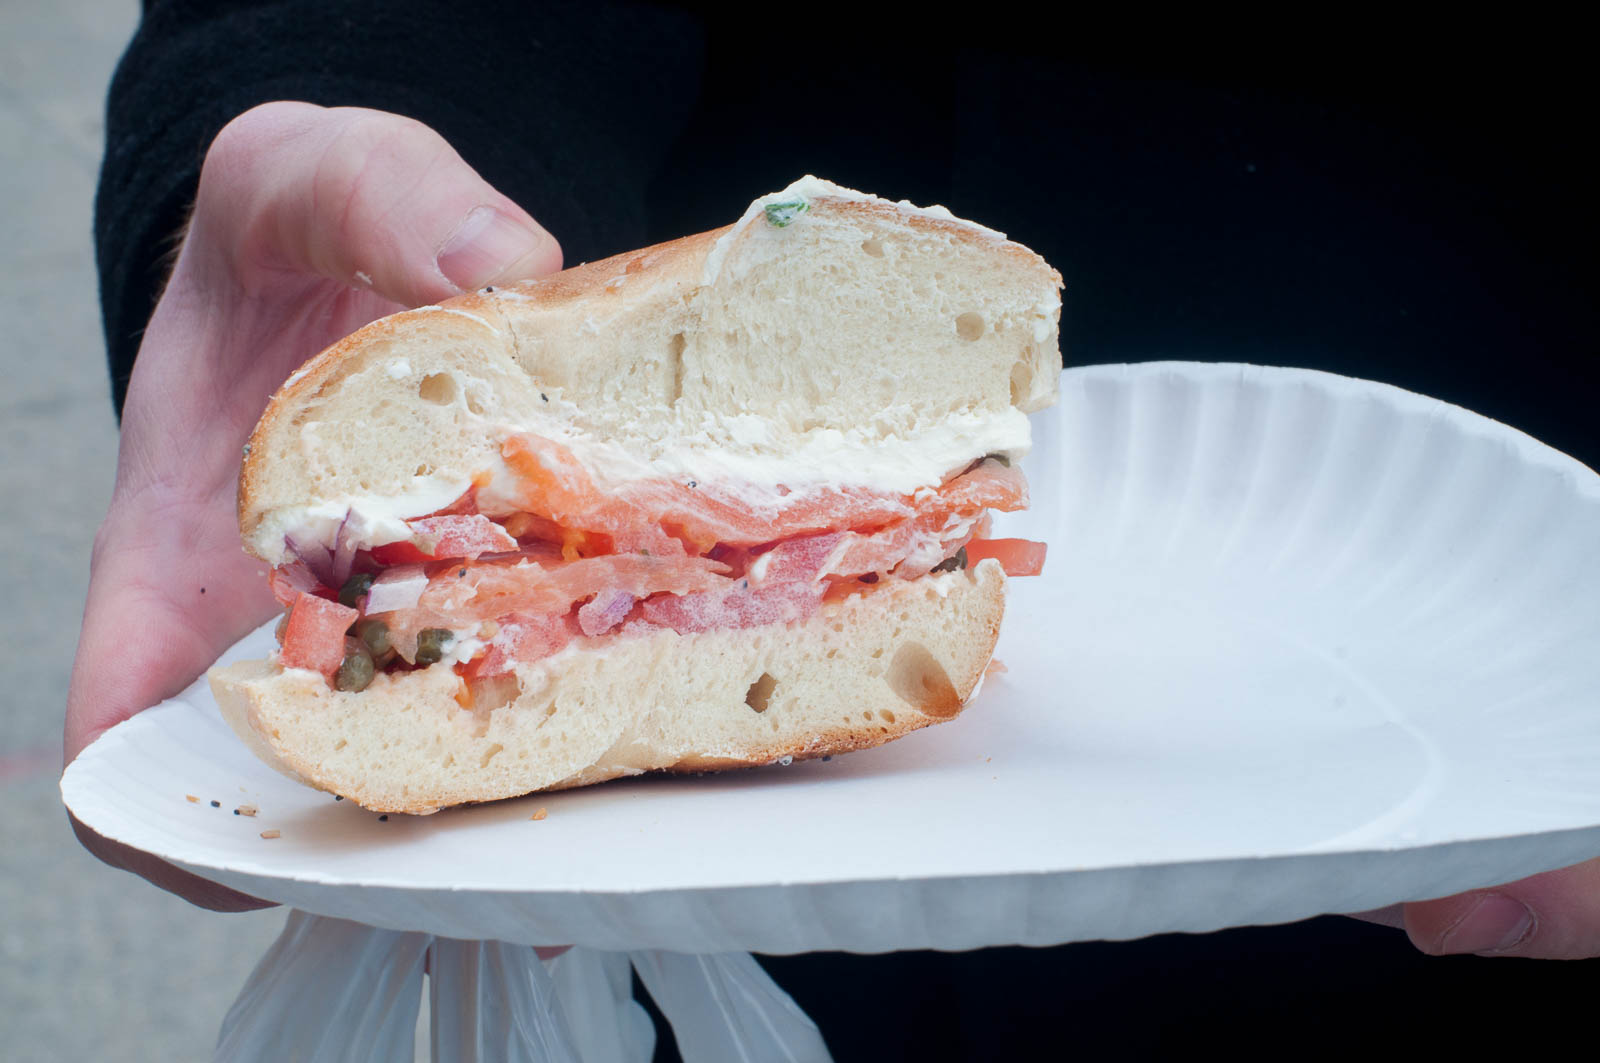 Guinness-World-Record-Bagel-and-Lox-by-Edwina-Hay-0159.jpg